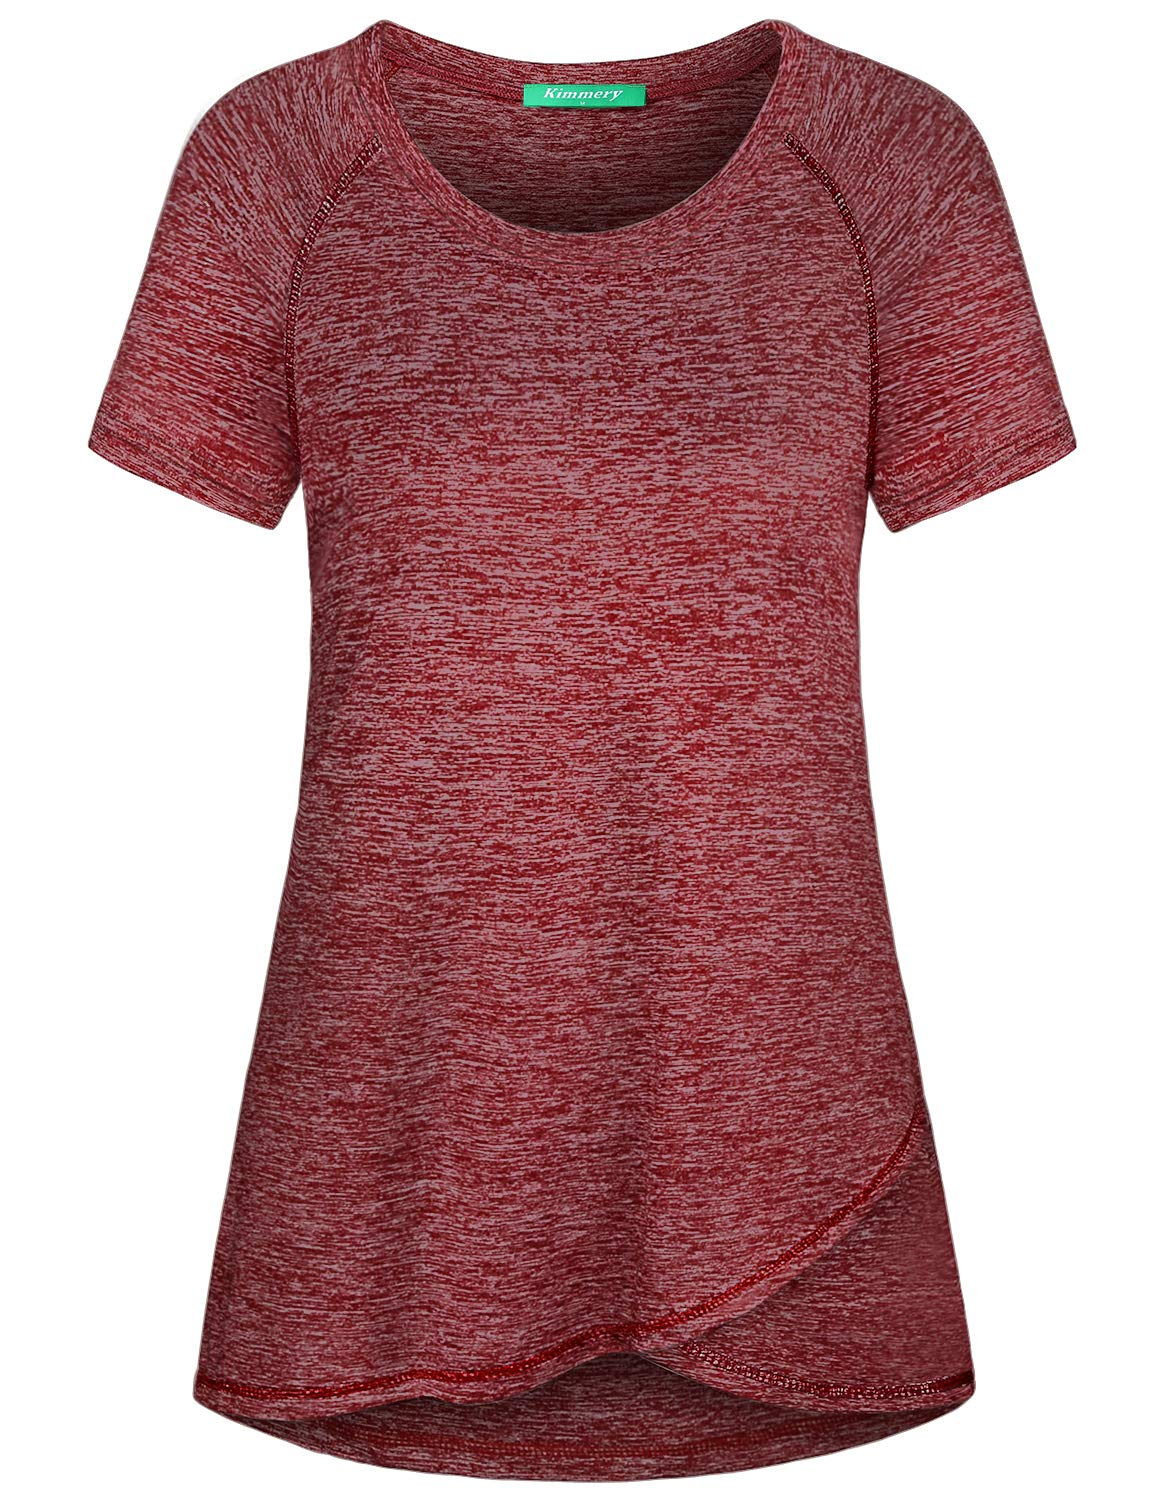 Kimmery Summer Tops for Women, Juniors Feminine Fit Marled Knit Tunic Essential Tee Smooth Lounging Tennis School P.E Class Physical Scoop Shirt Basic Short Sleeve Going Out Stylish Activewear Red M